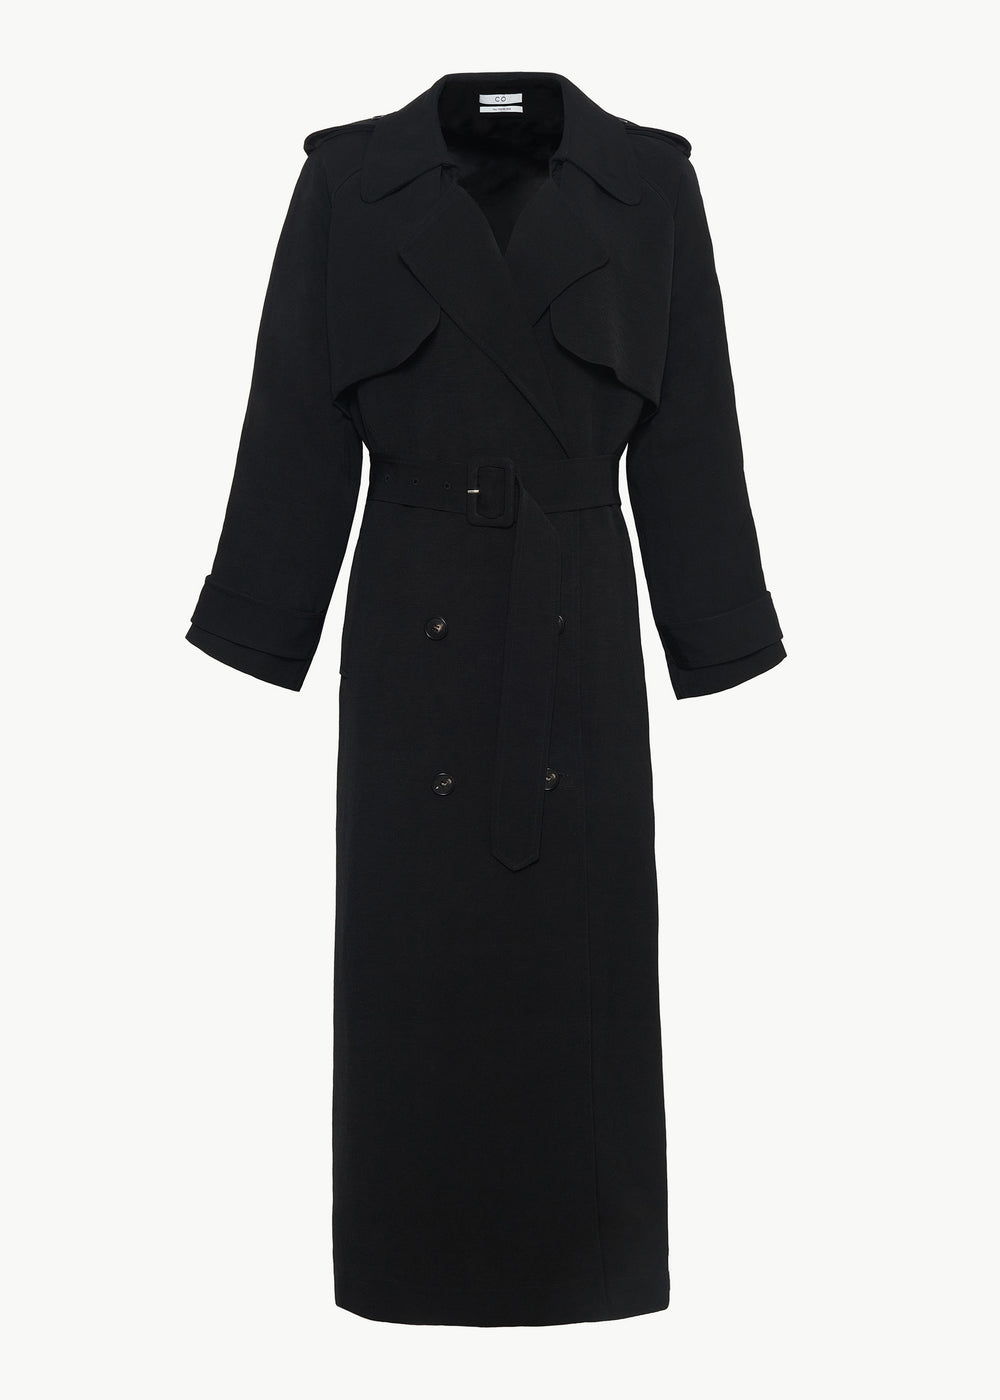 Double Breasted Coat with Belt in Viscose Linen - Black - CO